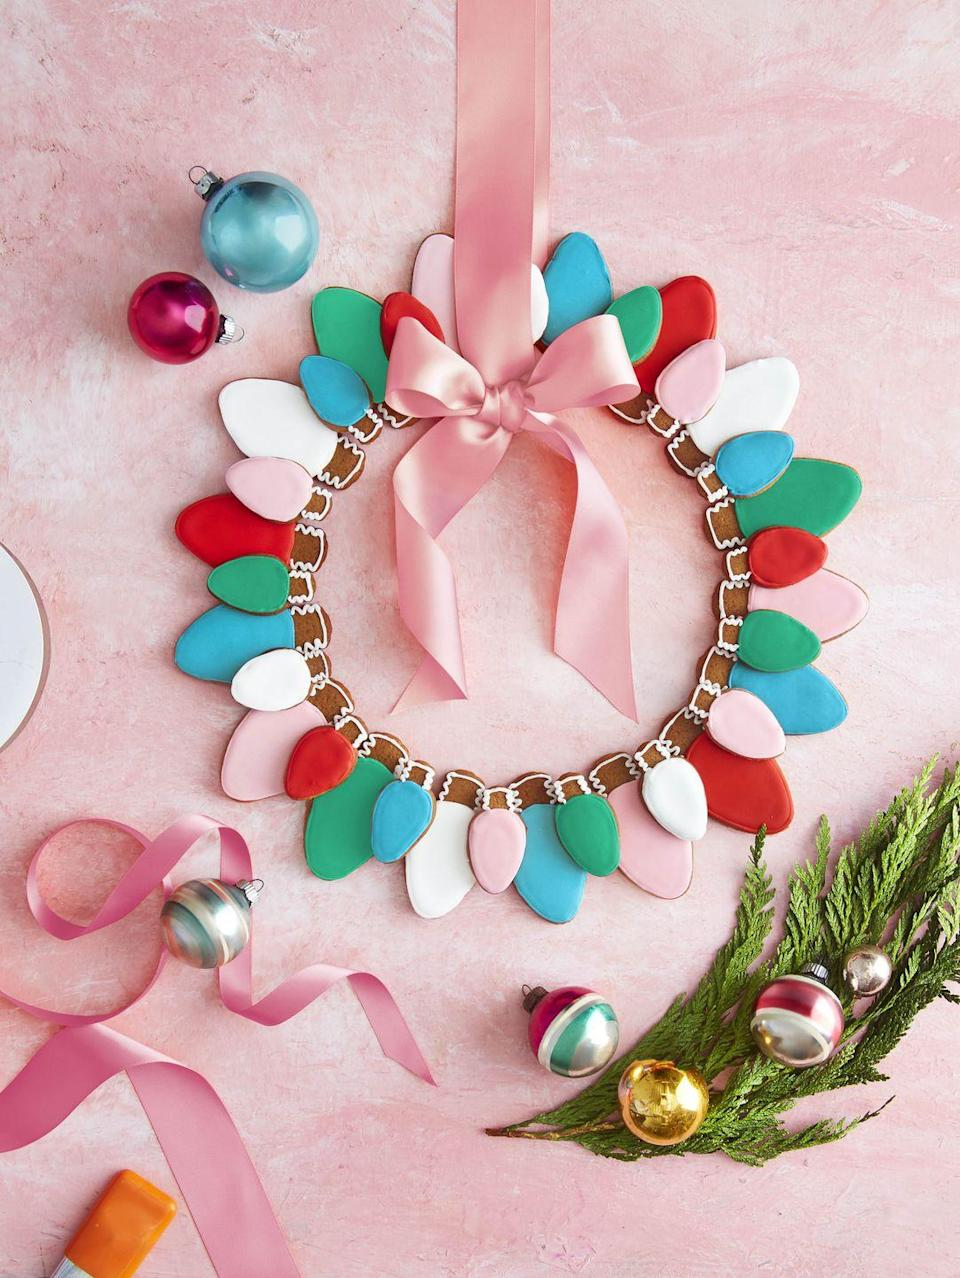 """<p>Fashion homemade Christmas bulb gingerbread cookies into the shape of a wreath and gift with a tag reading, """"Hope your season<br>is merry and bright.""""</p><p><strong><a href=""""https://www.countryliving.com/food-drinks/a34331369/christmas-light-gingerbread-cookies-recipe/"""" rel=""""nofollow noopener"""" target=""""_blank"""" data-ylk=""""slk:Get the recipe"""" class=""""link rapid-noclick-resp"""">Get the recipe</a>.</strong></p><p><a class=""""link rapid-noclick-resp"""" href=""""https://www.amazon.com/Christmas-Light-Bulb-Cookie-Cutter/dp/B08D7F2N8X/ref=sr_1_2_sspa?tag=syn-yahoo-20&ascsubtag=%5Bartid%7C10050.g.645%5Bsrc%7Cyahoo-us"""" rel=""""nofollow noopener"""" target=""""_blank"""" data-ylk=""""slk:SHOP COOKIE CUTTERS"""">SHOP COOKIE CUTTERS</a></p>"""